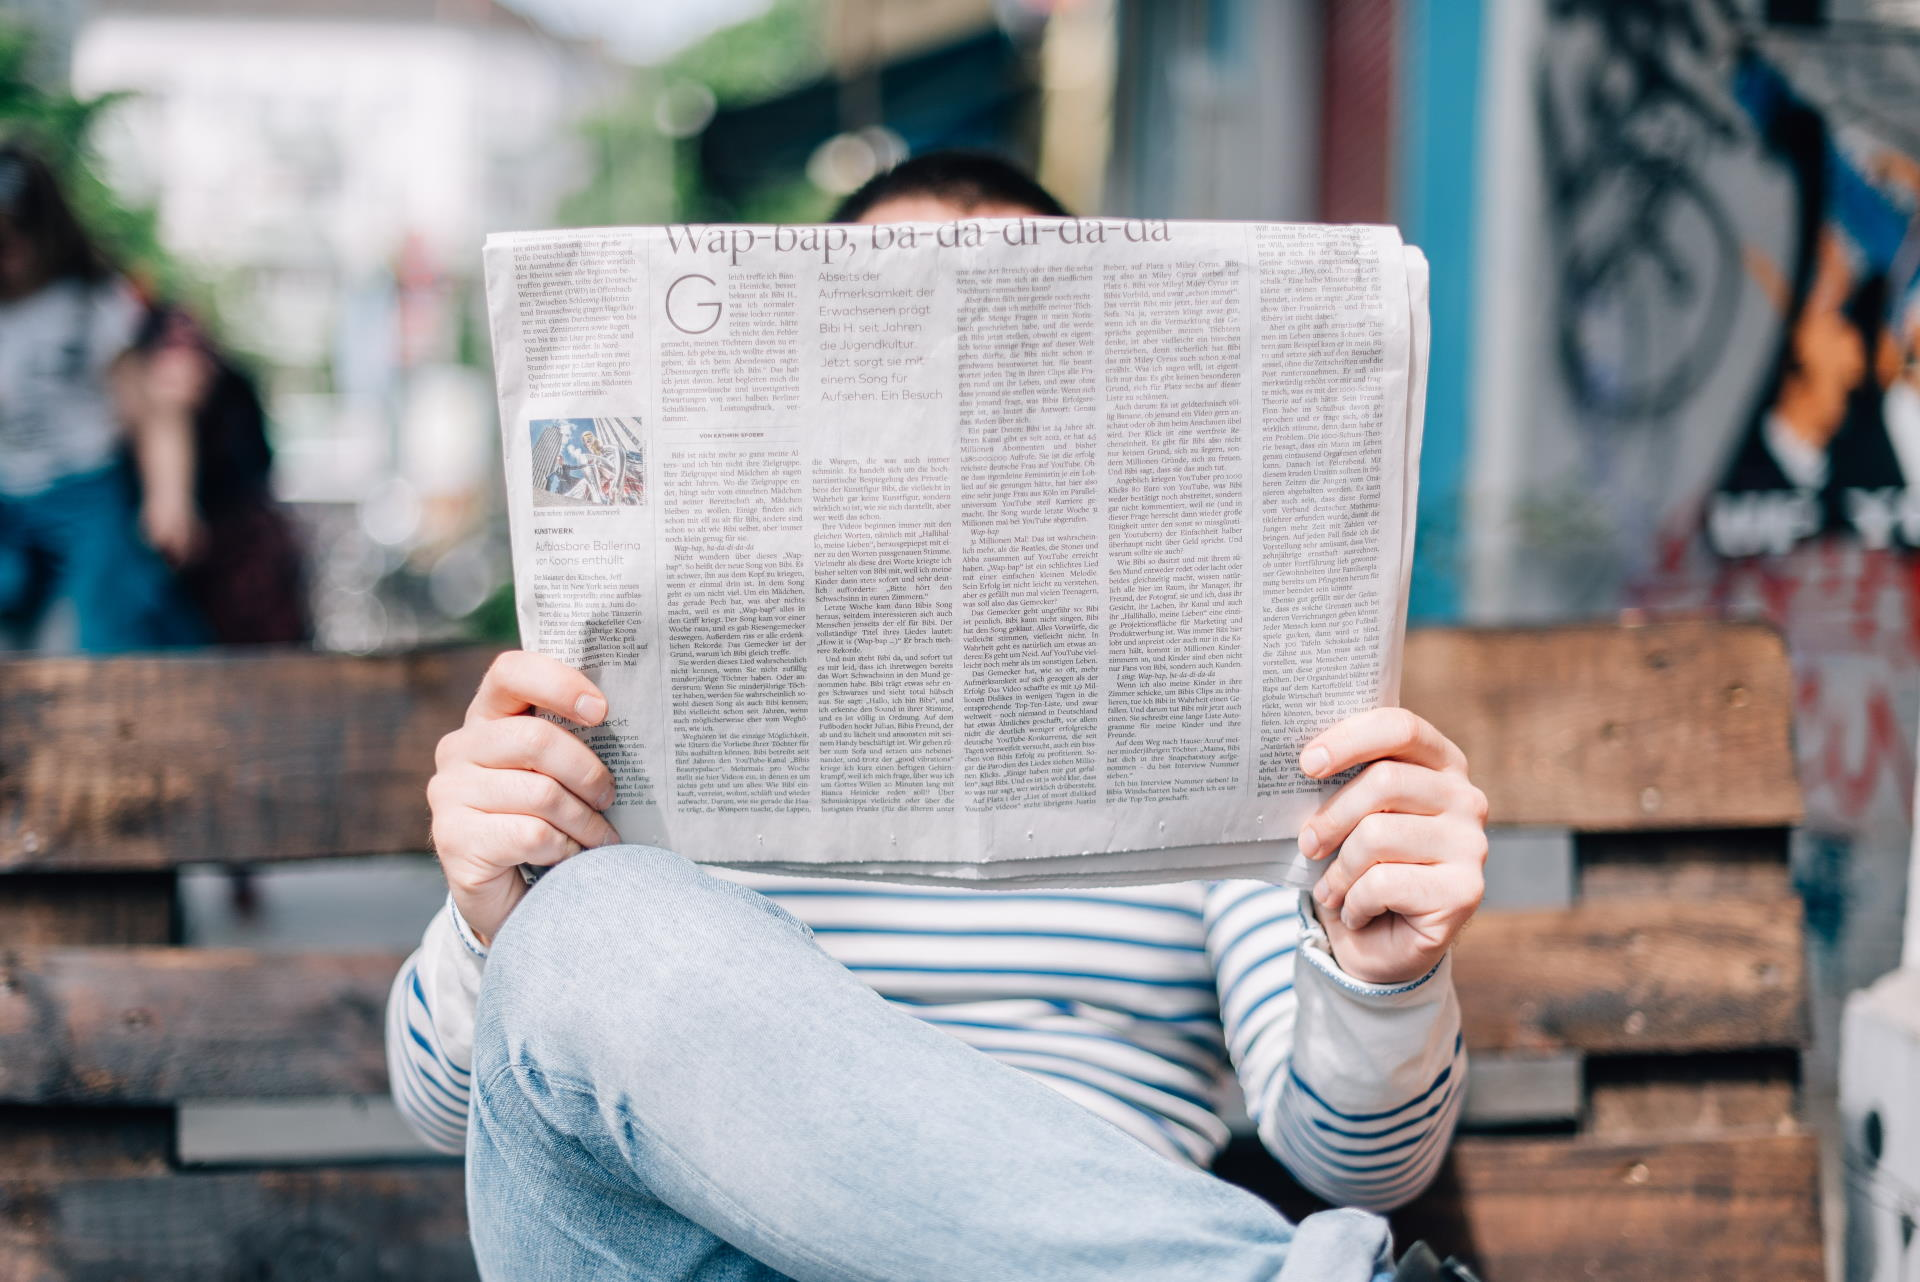 Image of man reading a newspaper to direct to news page